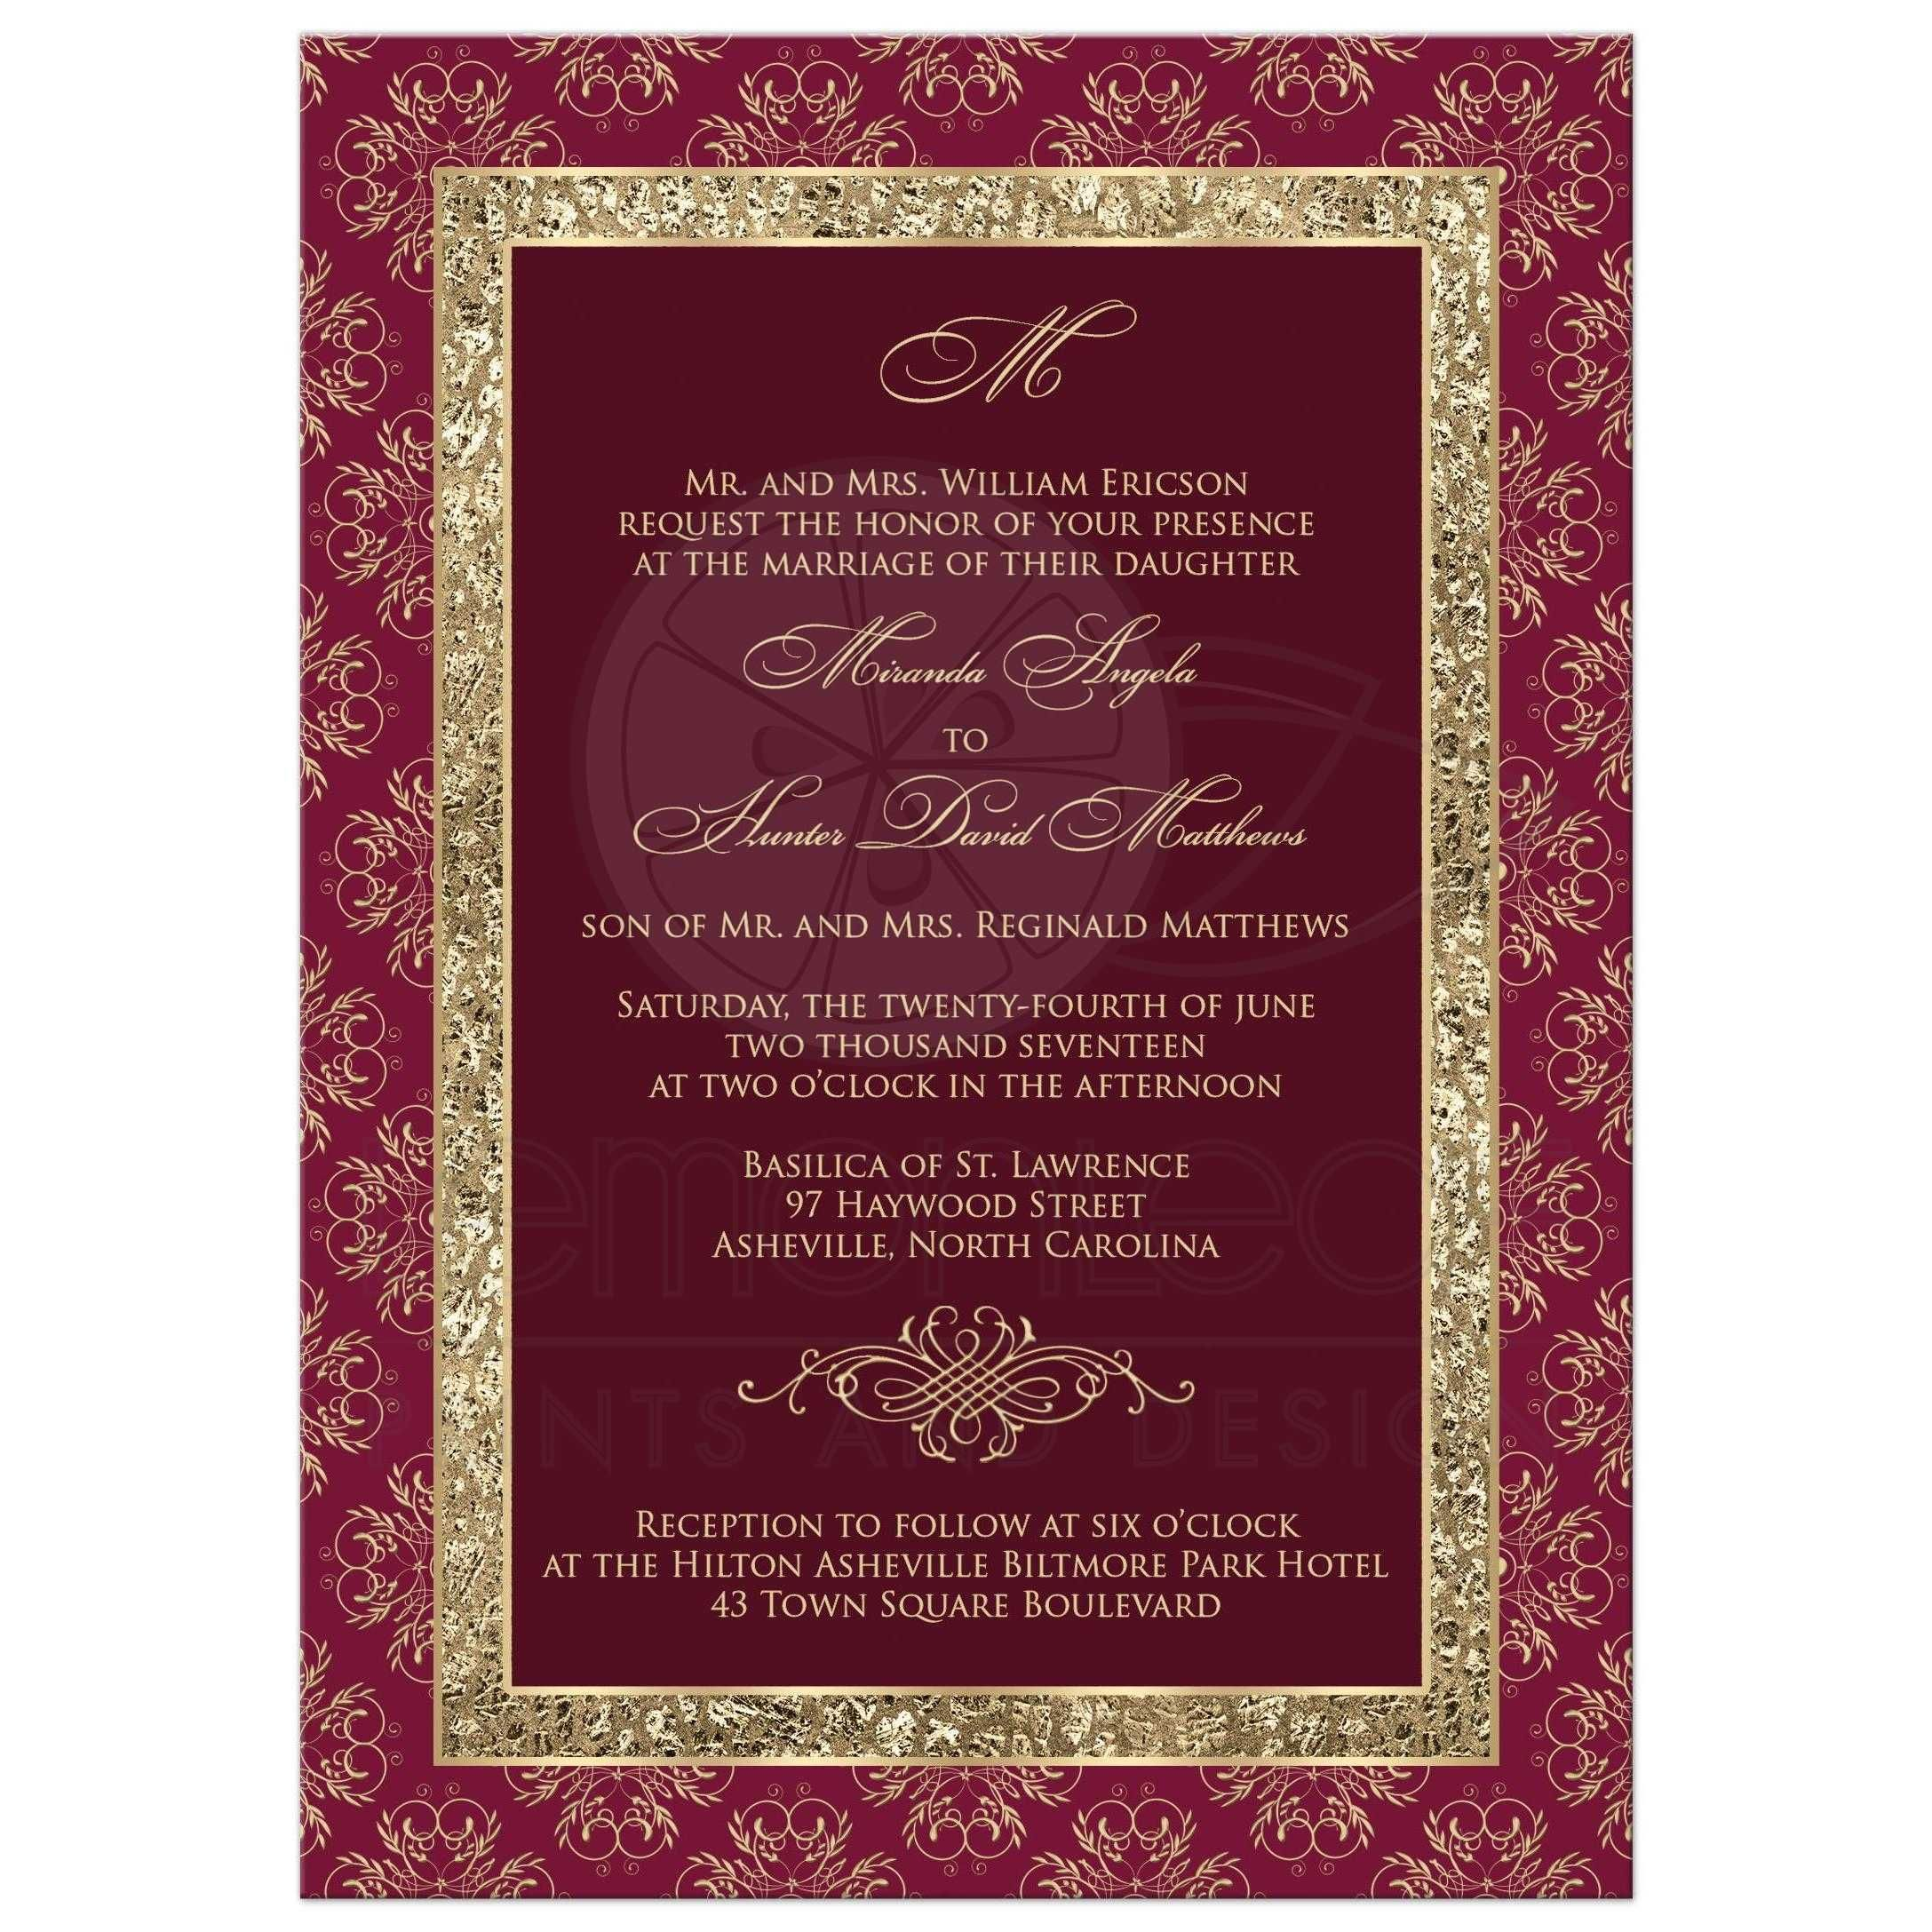 Wedding Invitation Burgundy Gold Elegance Monogram Scroll